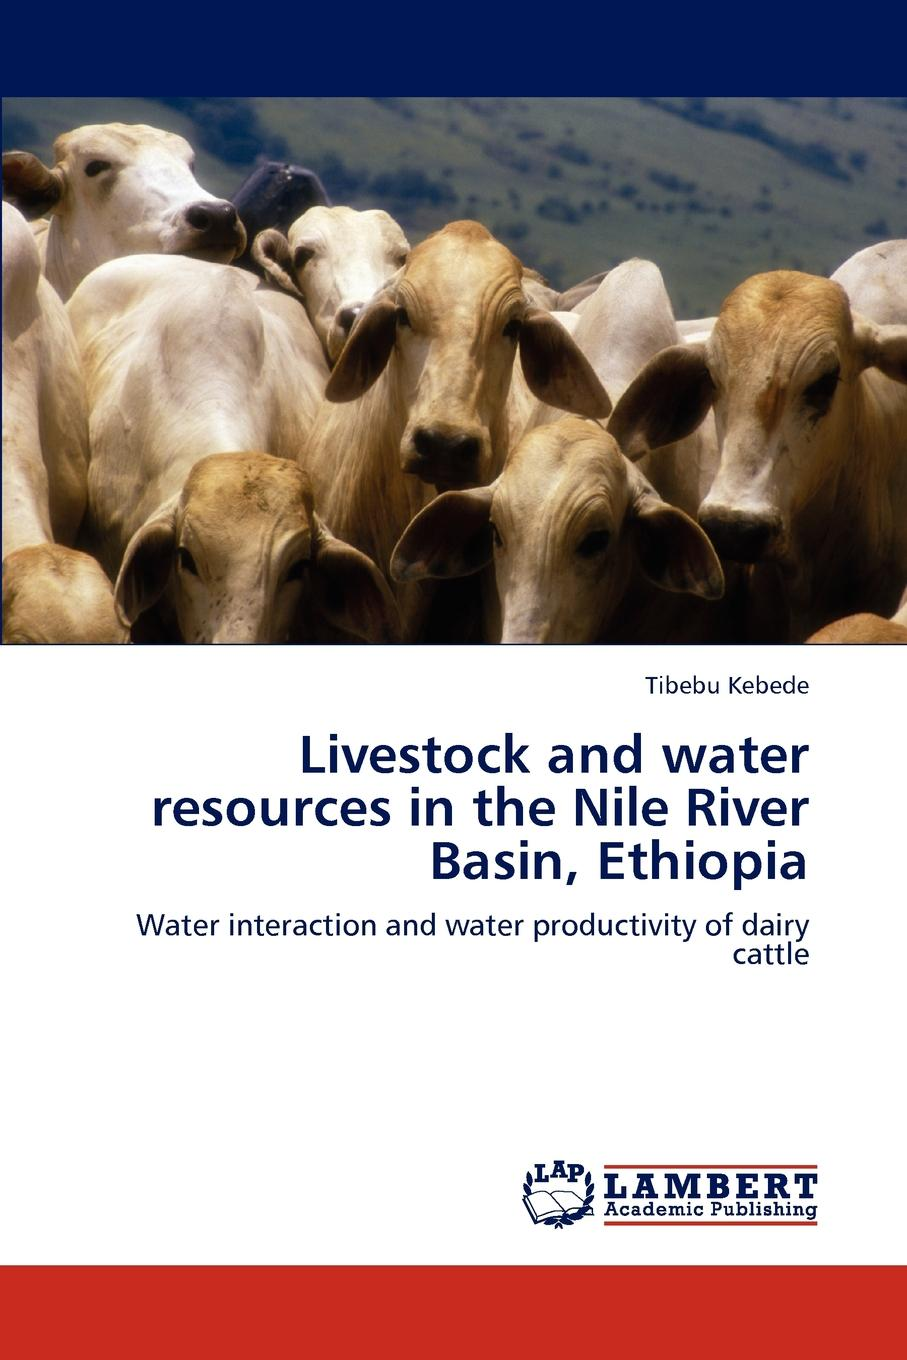 Tibebu Kebede Livestock and water resources in the Nile River Basin, Ethiopia didanna habtamu lemma livestock production systems in the tropics